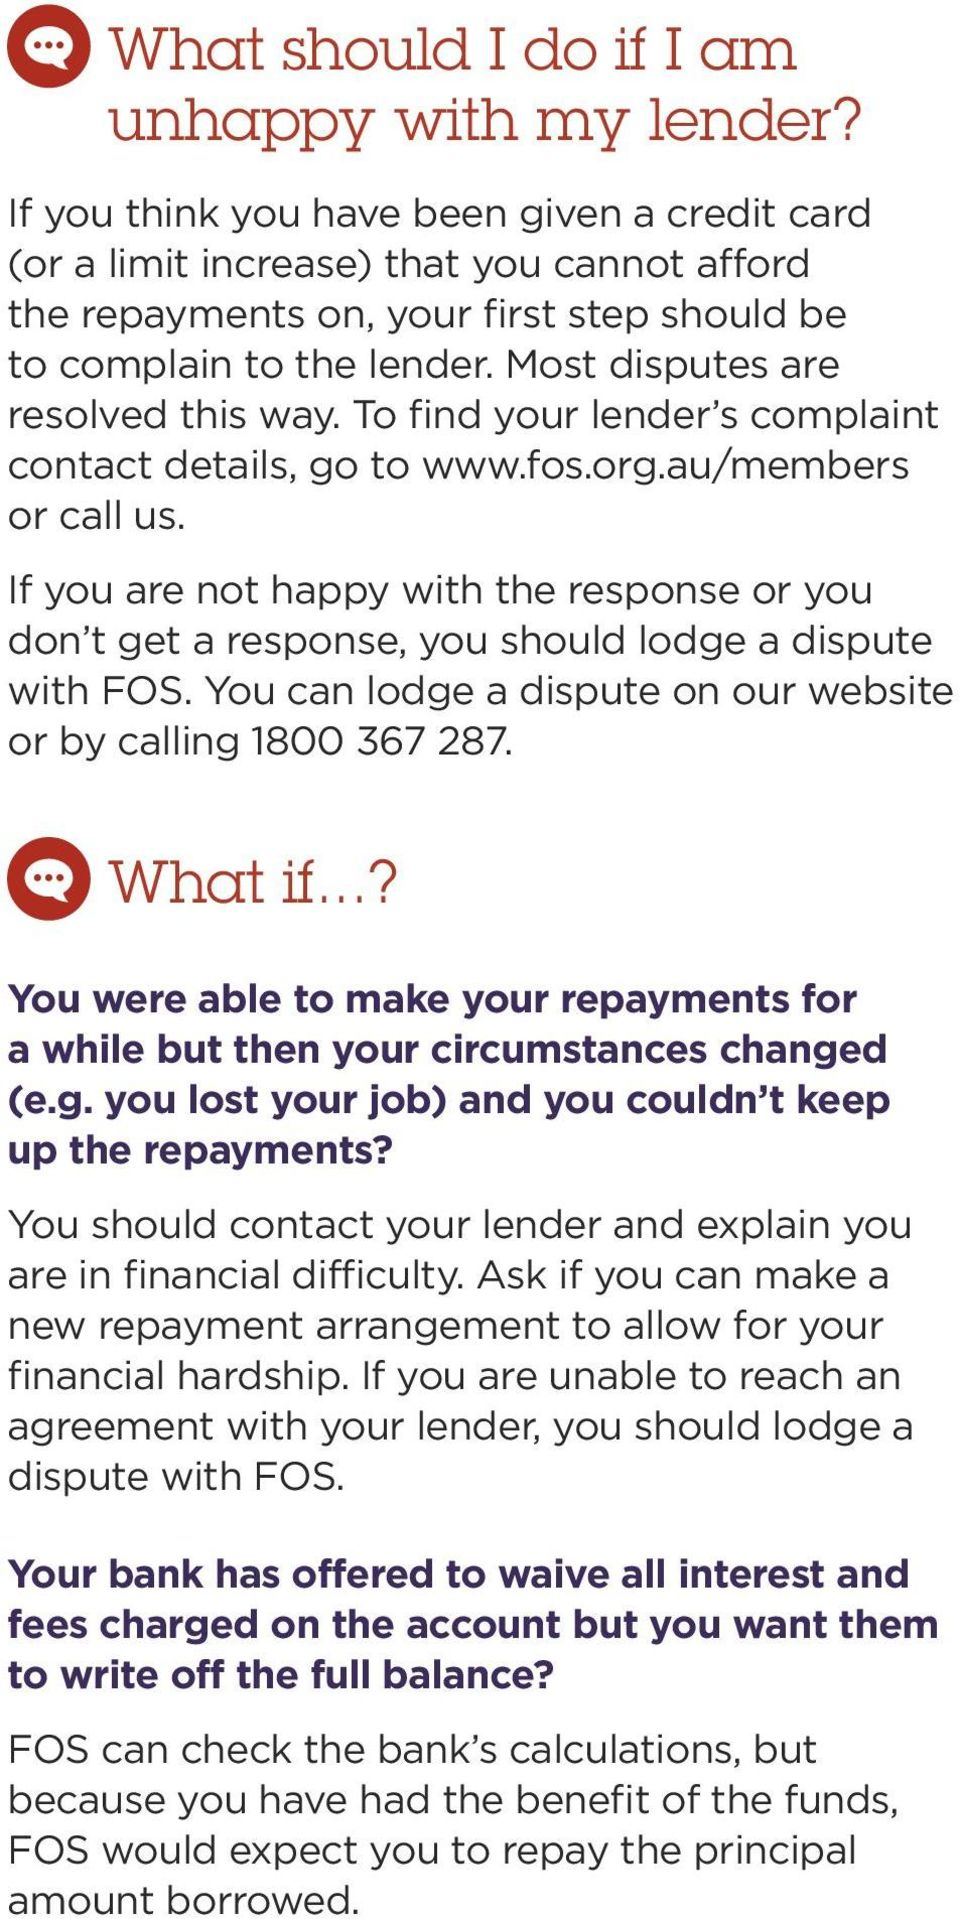 To find your lender s complaint contact details, go to www.fos.org.au/members or call us. If you are not happy with the response or you don t get a response, you should lodge a dispute with FOS.